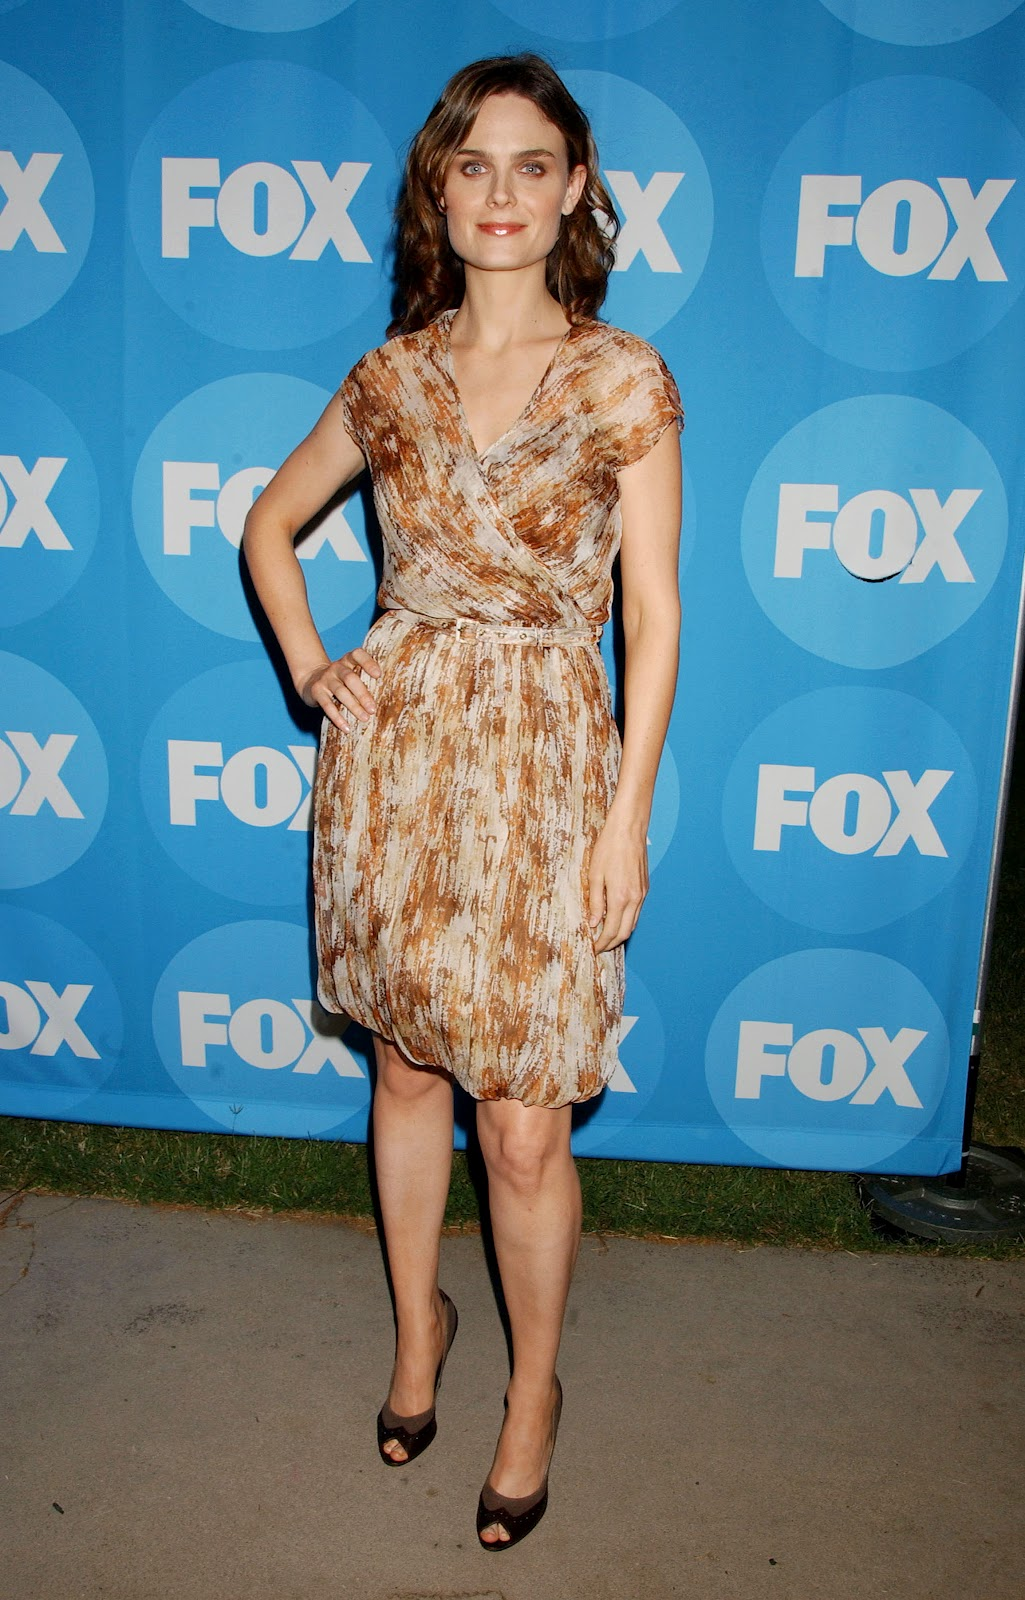 Happiness! Emily deschanel naked feet opinion